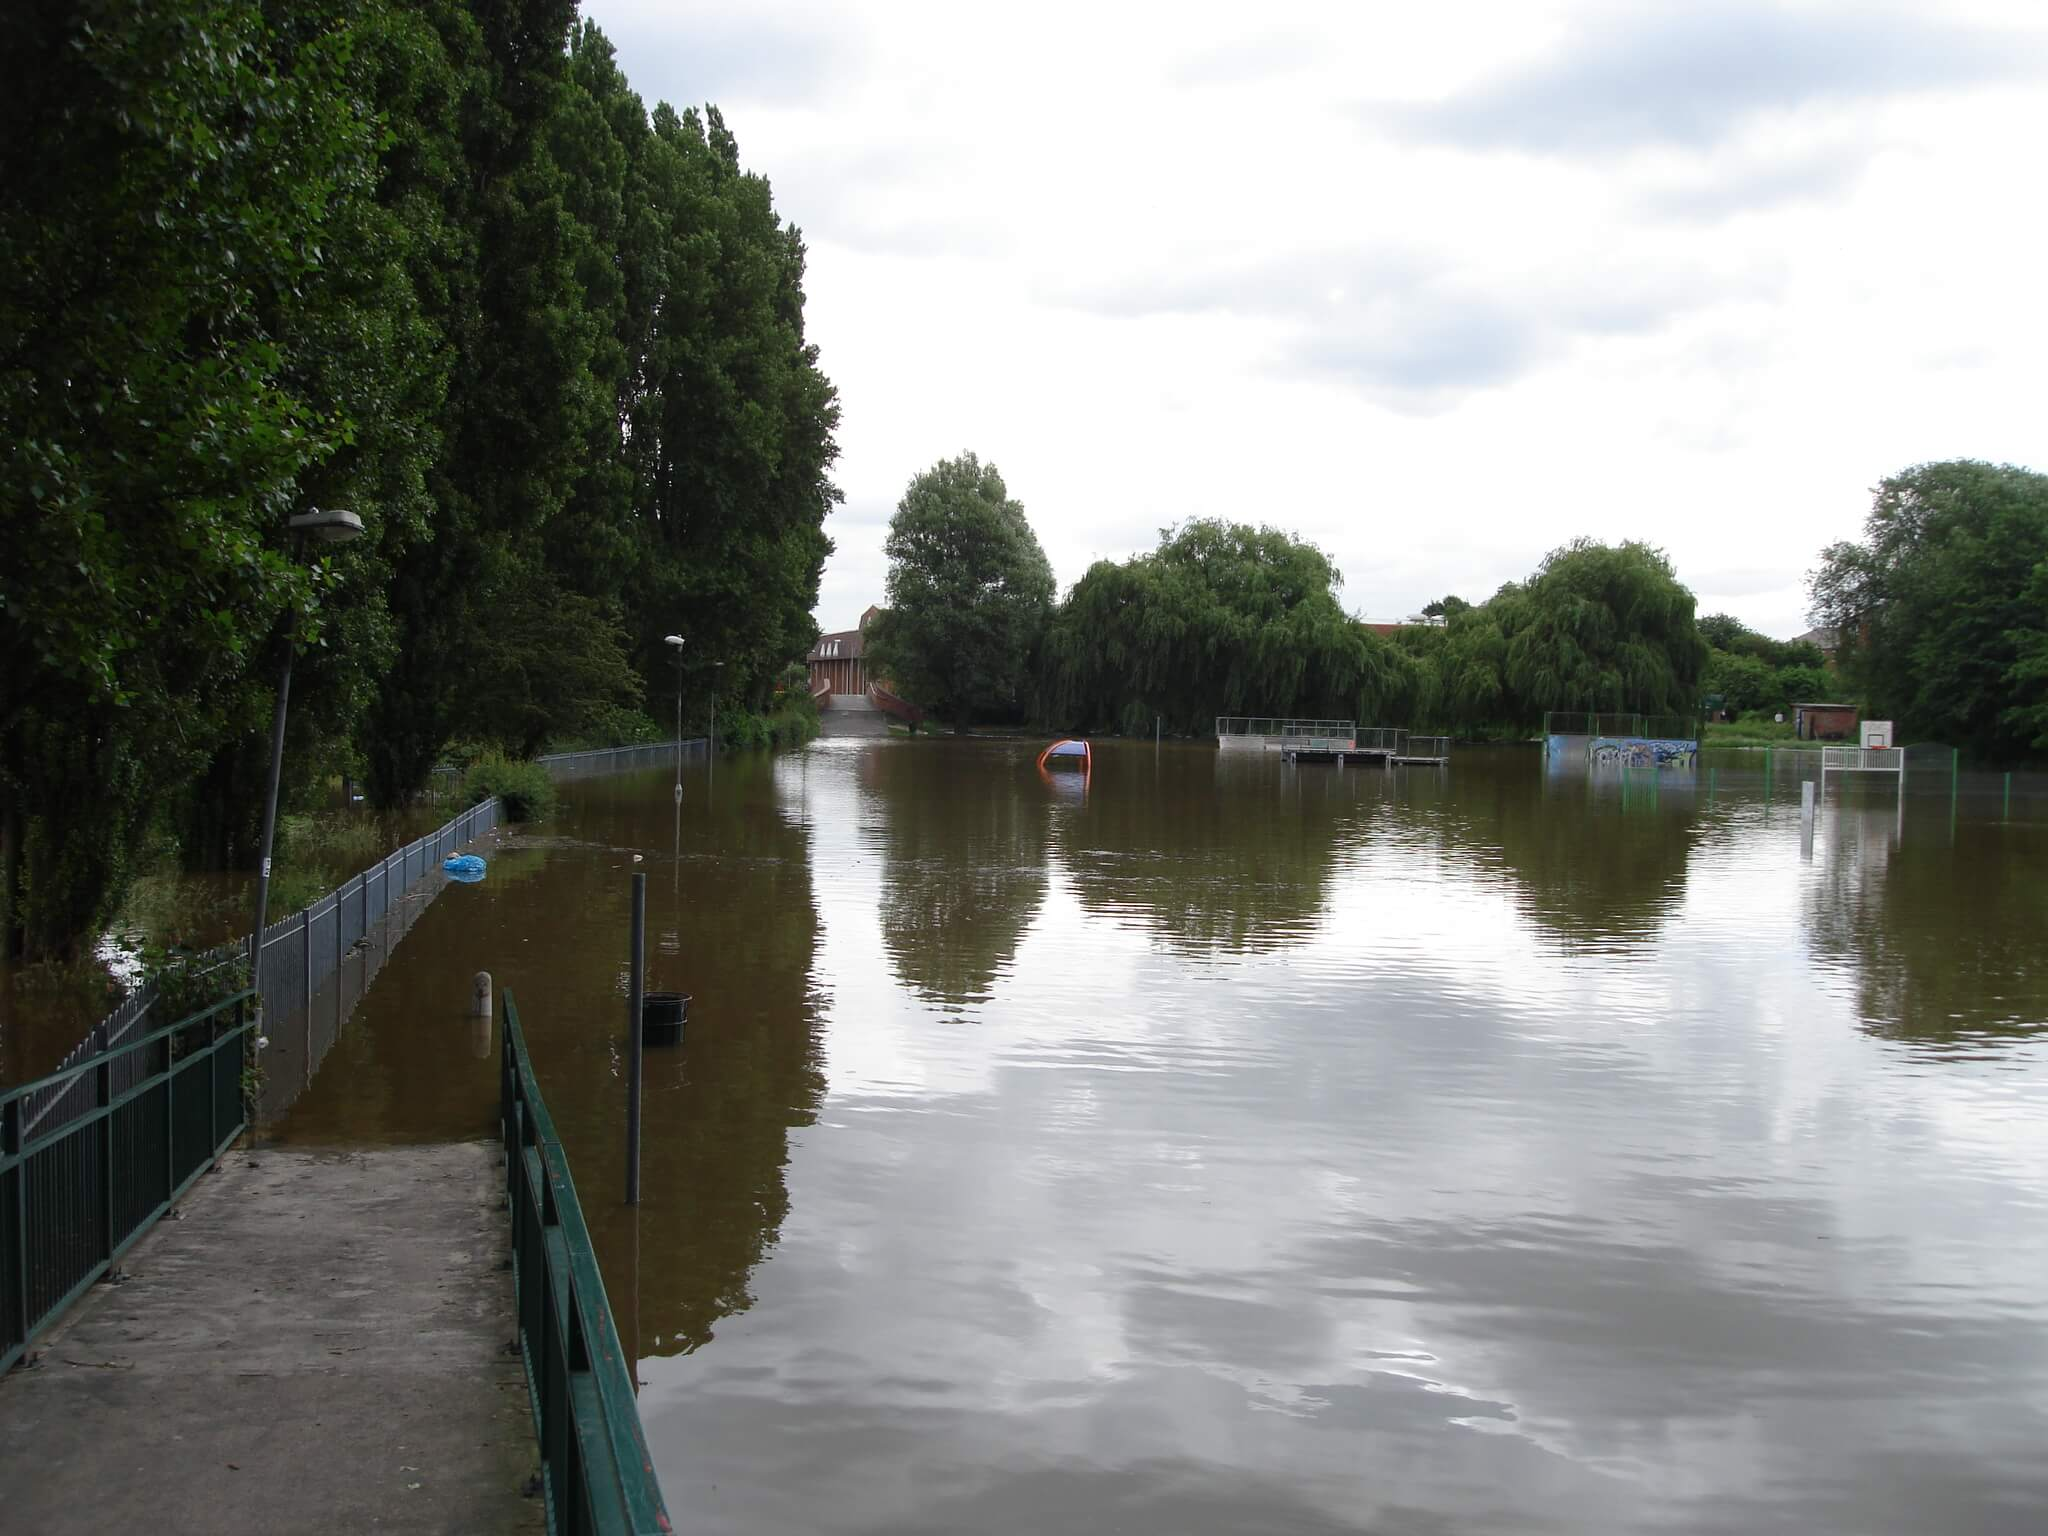 Know Your Flood Risk launches new 'Homeowners Guide to Flood Resilience'